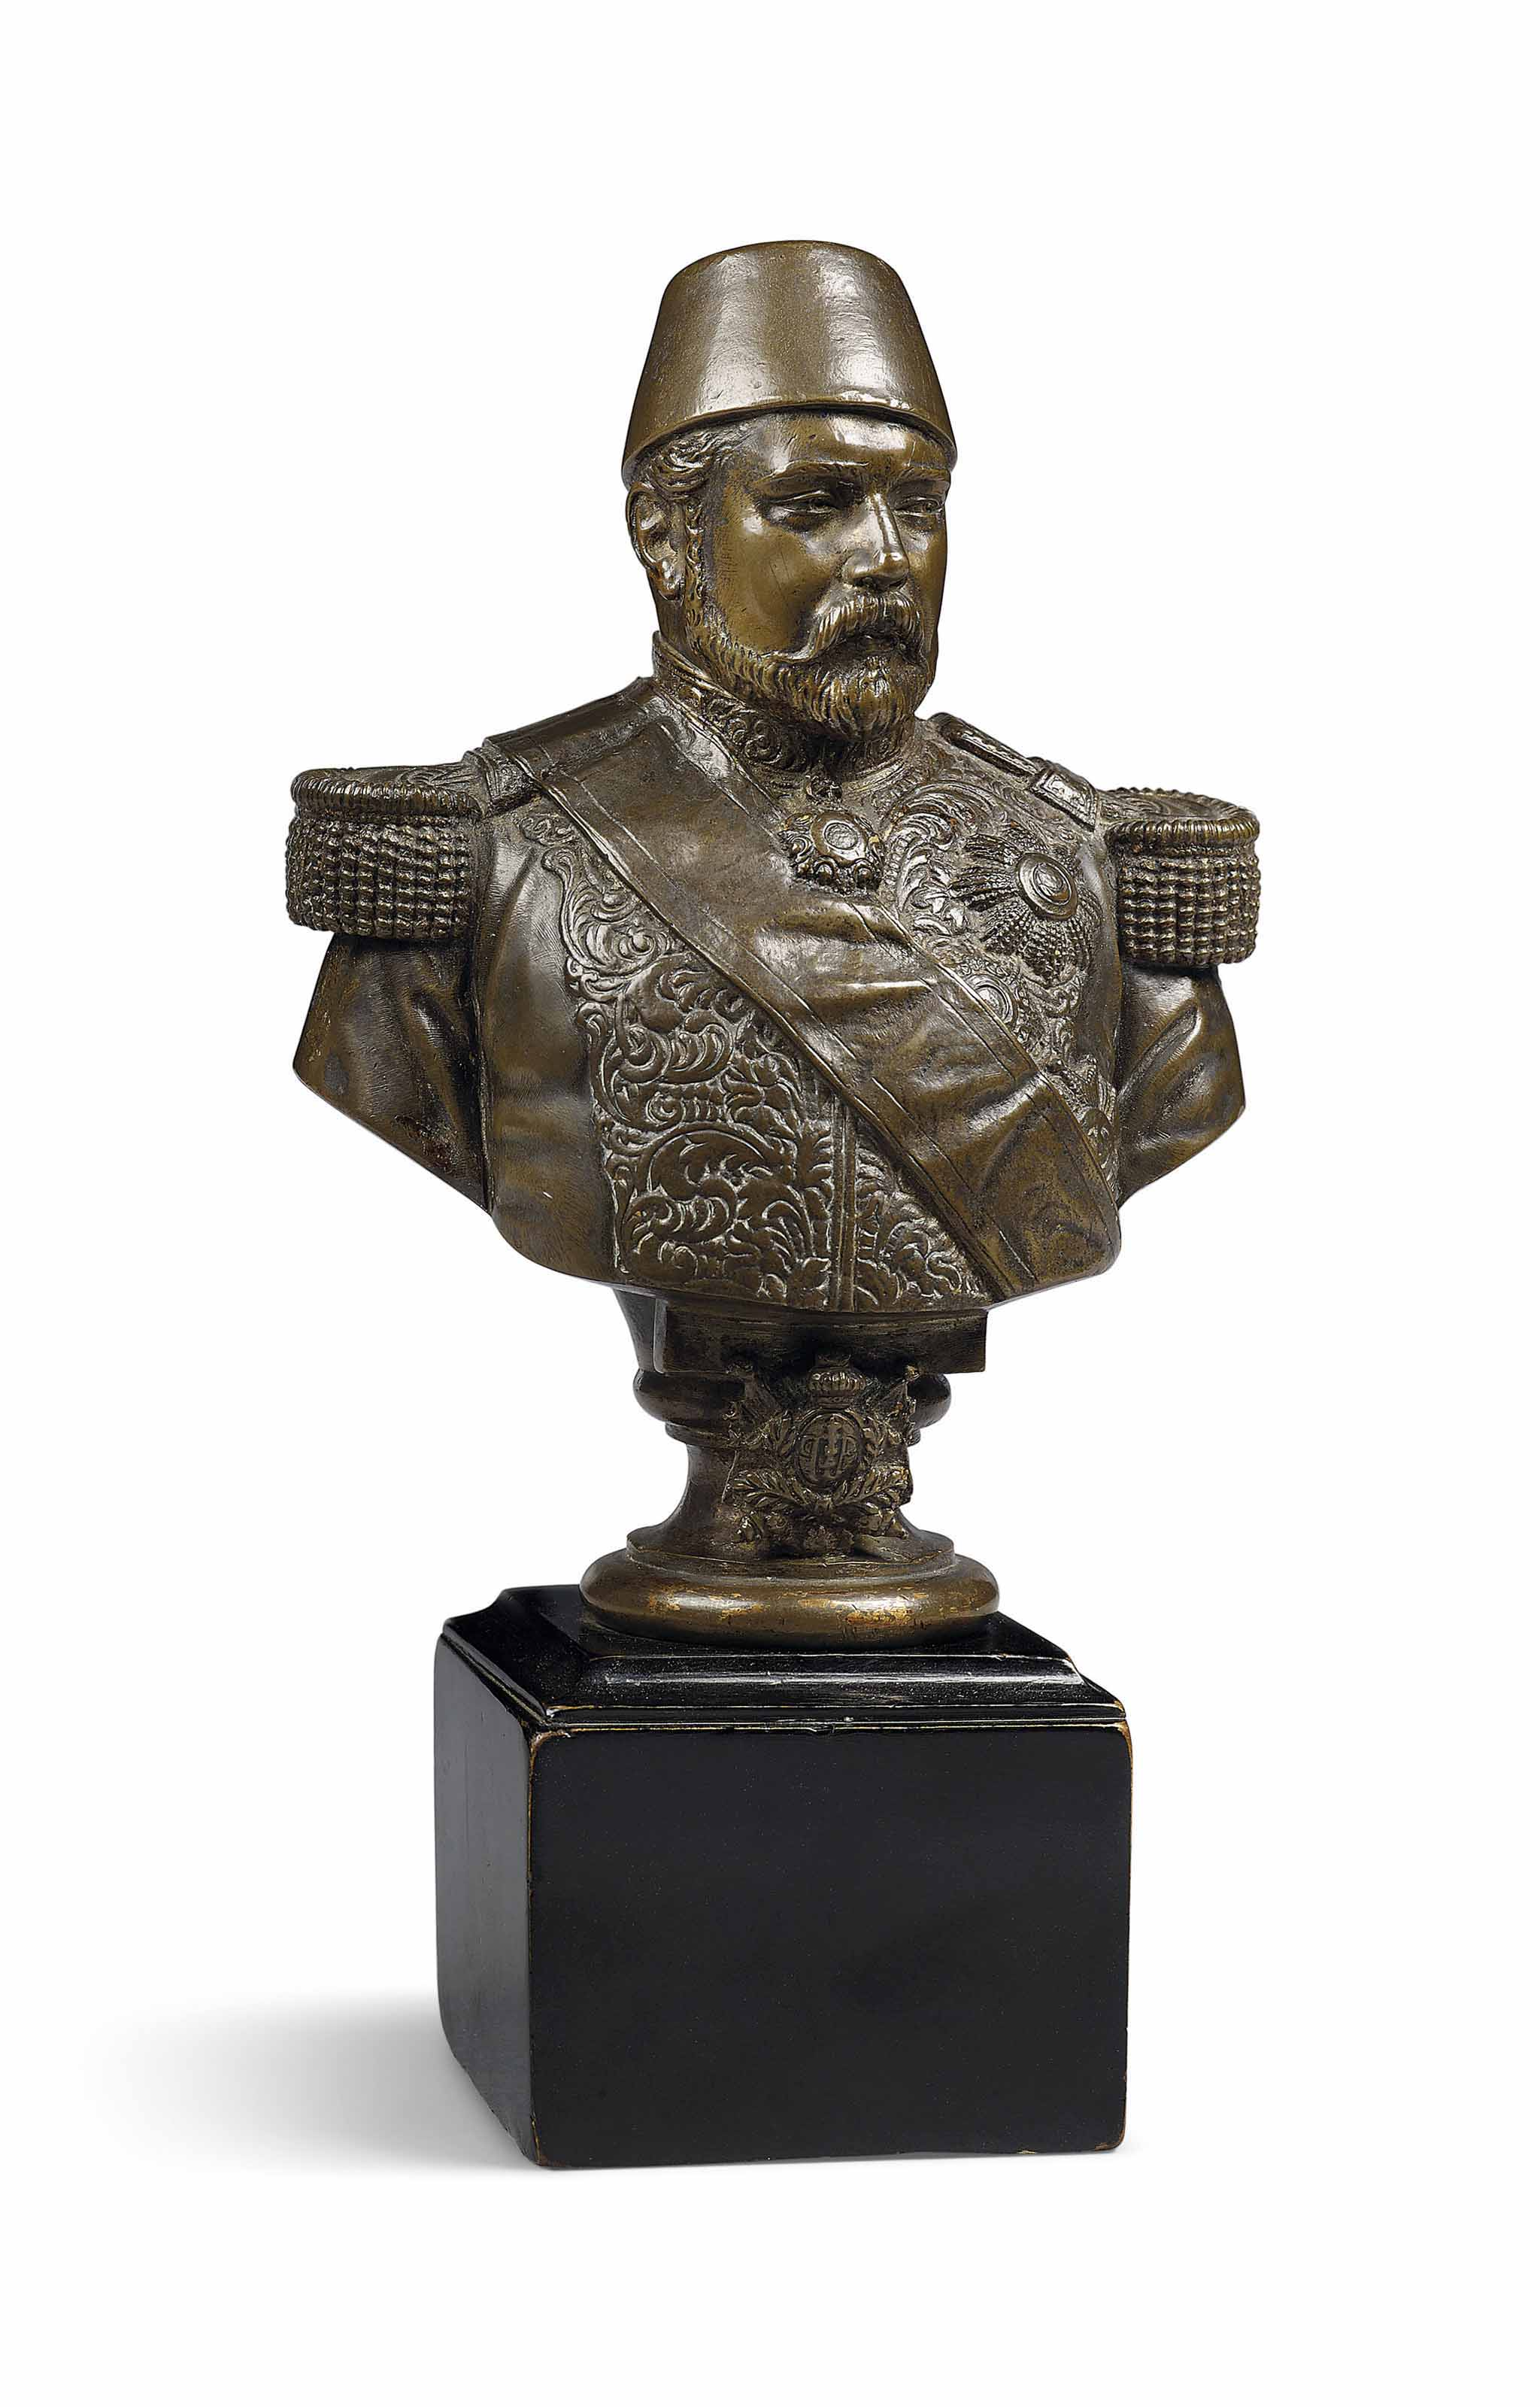 Bust of Ismail Pasha, Khedive of Egypt